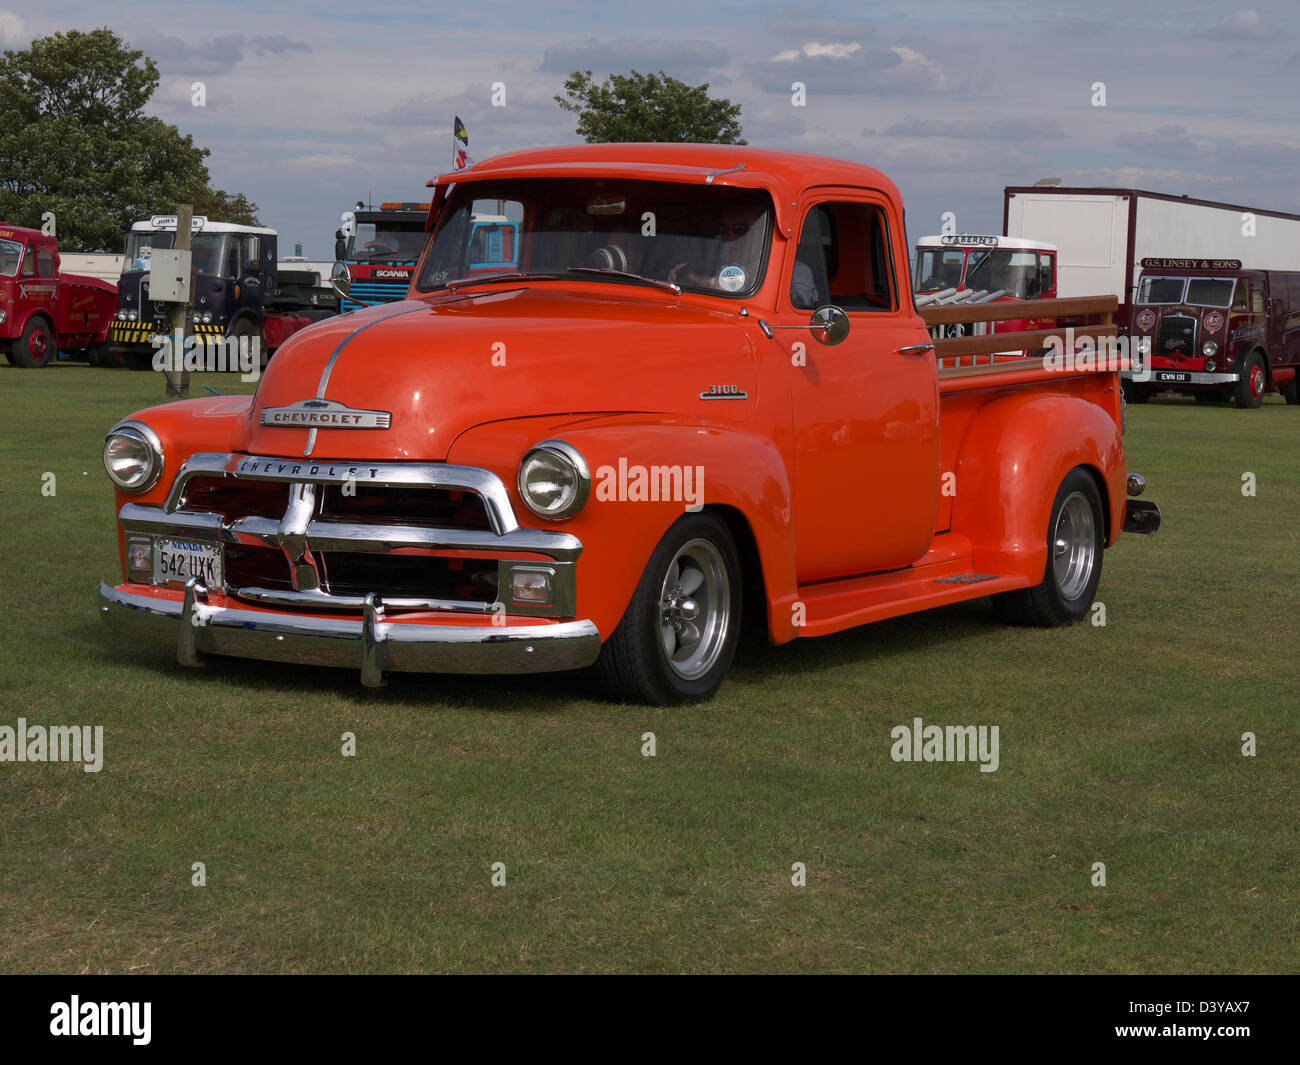 Chevrolet Van Stock Photos Images Alamy 1954 Chevy Step Stepside Pickup At Lincolnshire Steam And Vintage Rally Image